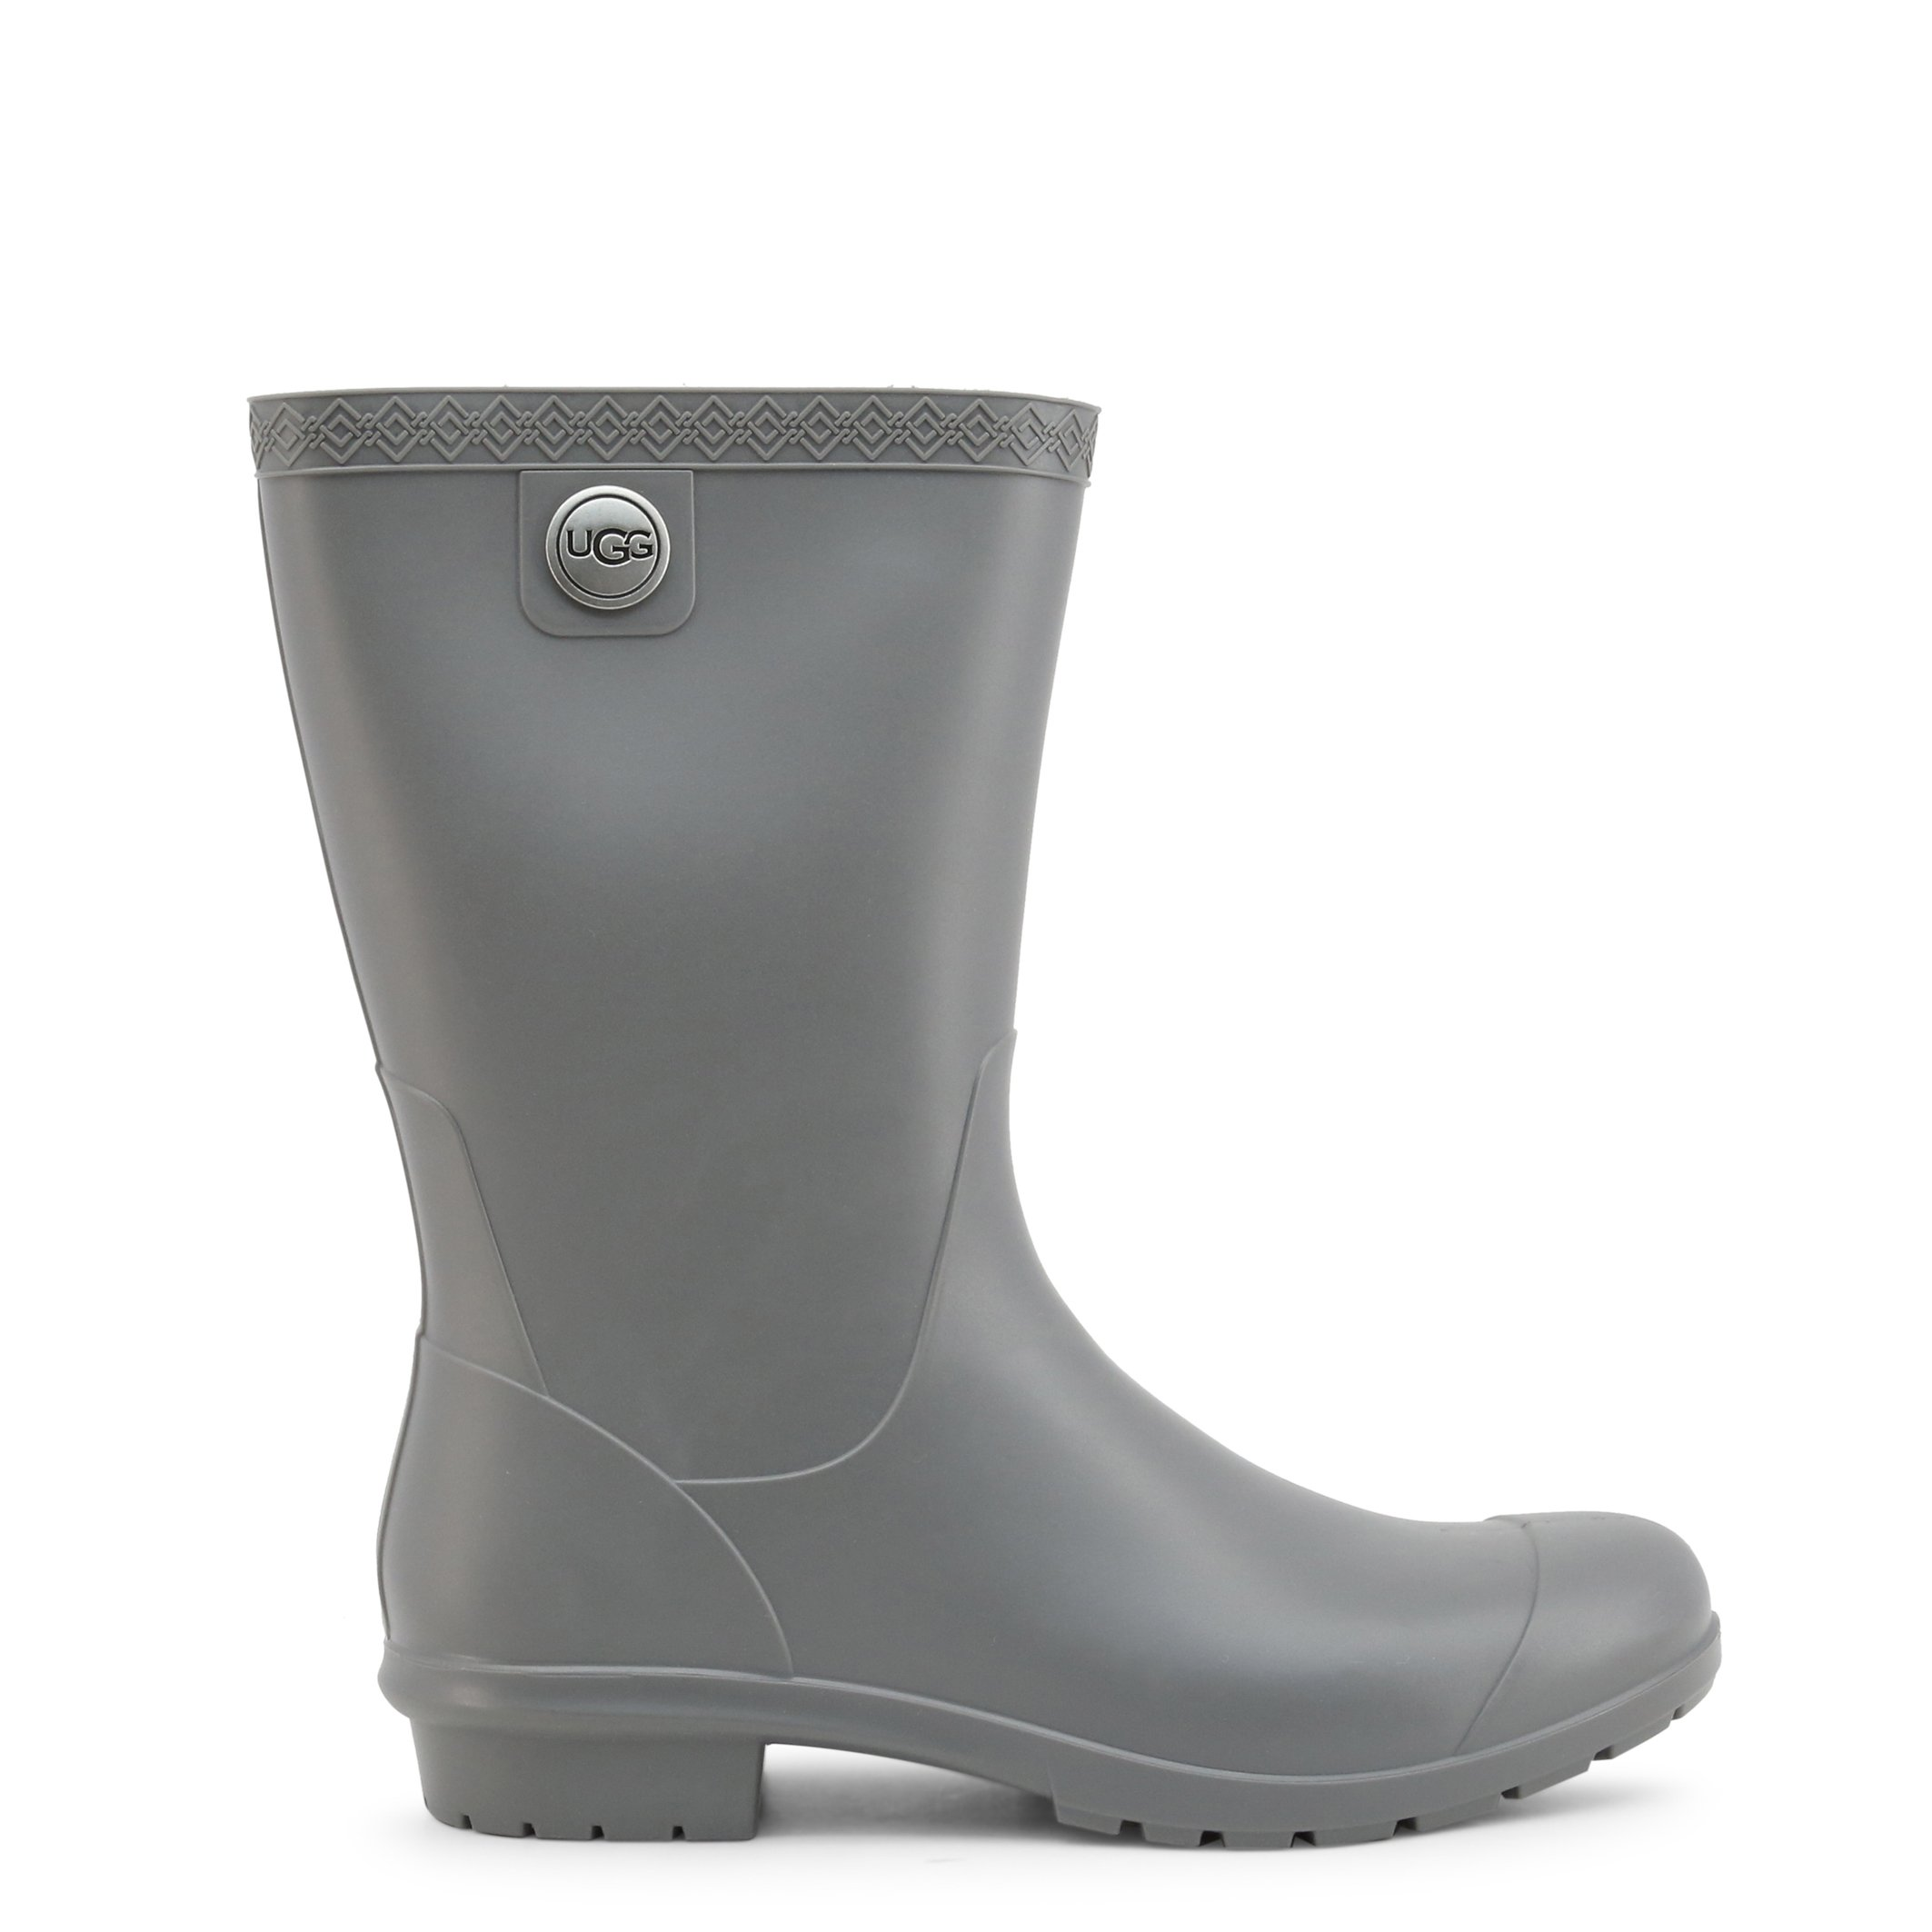 UGG Women's Ankle Boot Various Colours 1100510 - grey EU 36